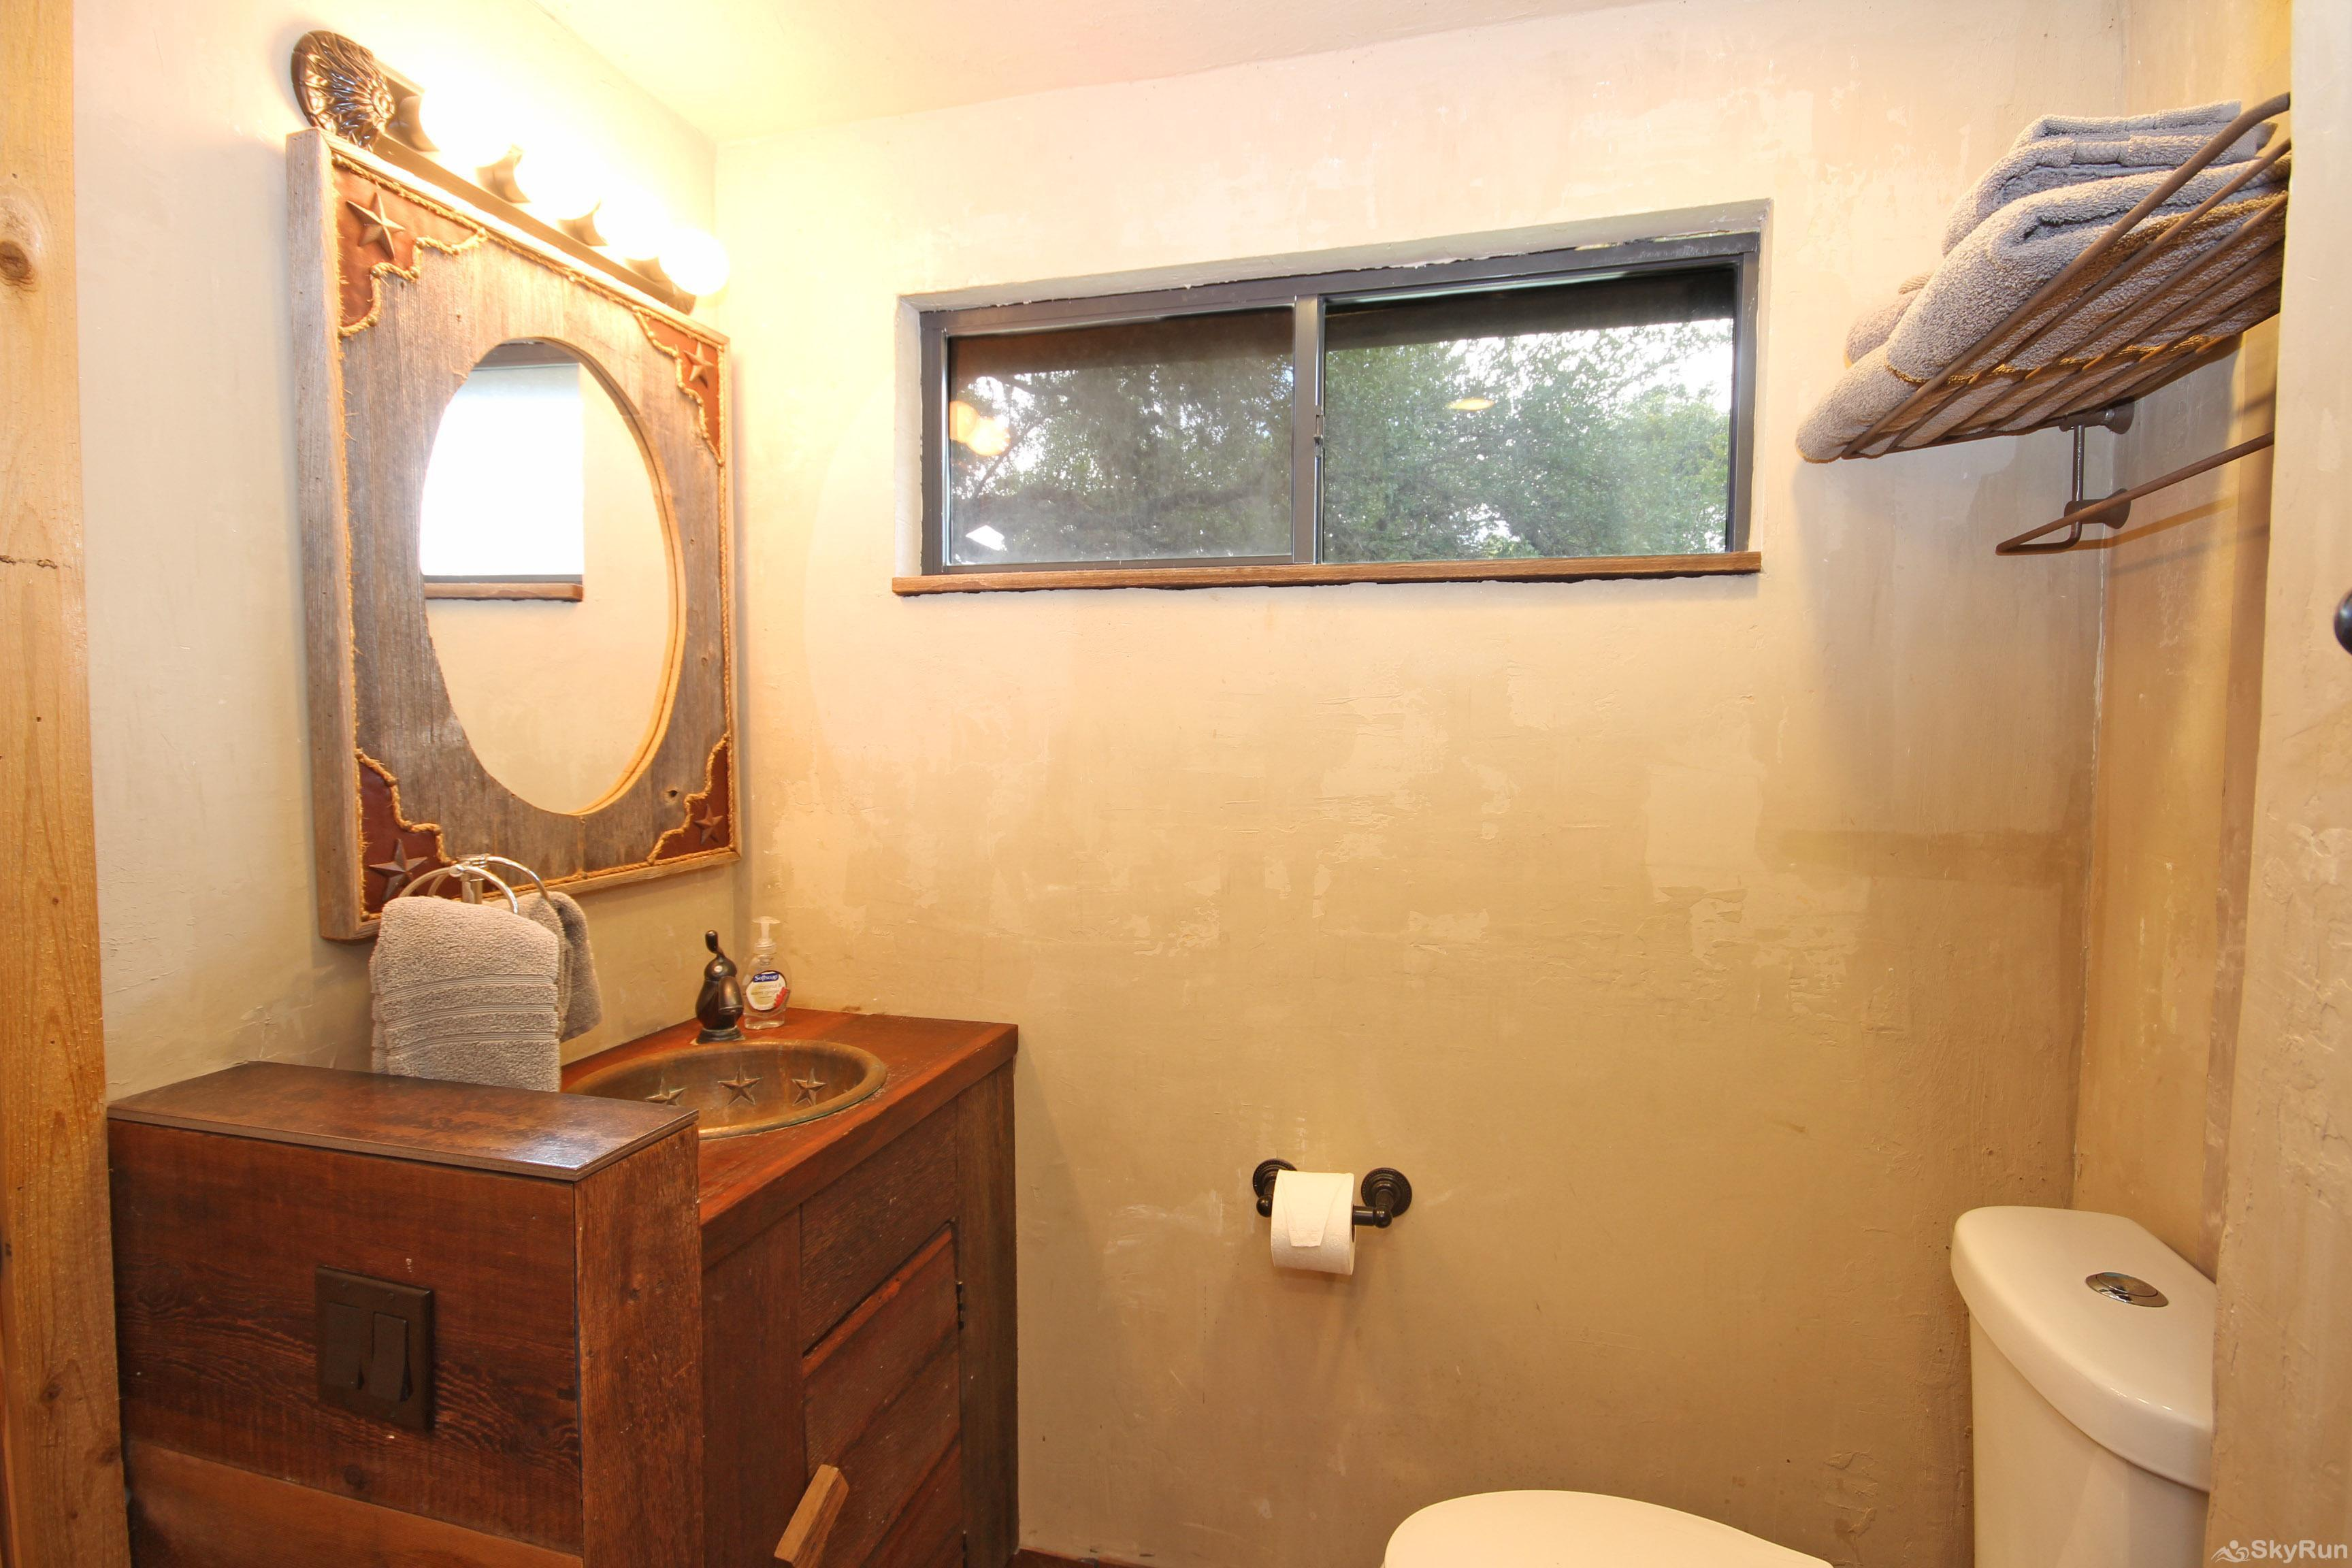 OLD GOAT HOUSE Third Full Bathroom